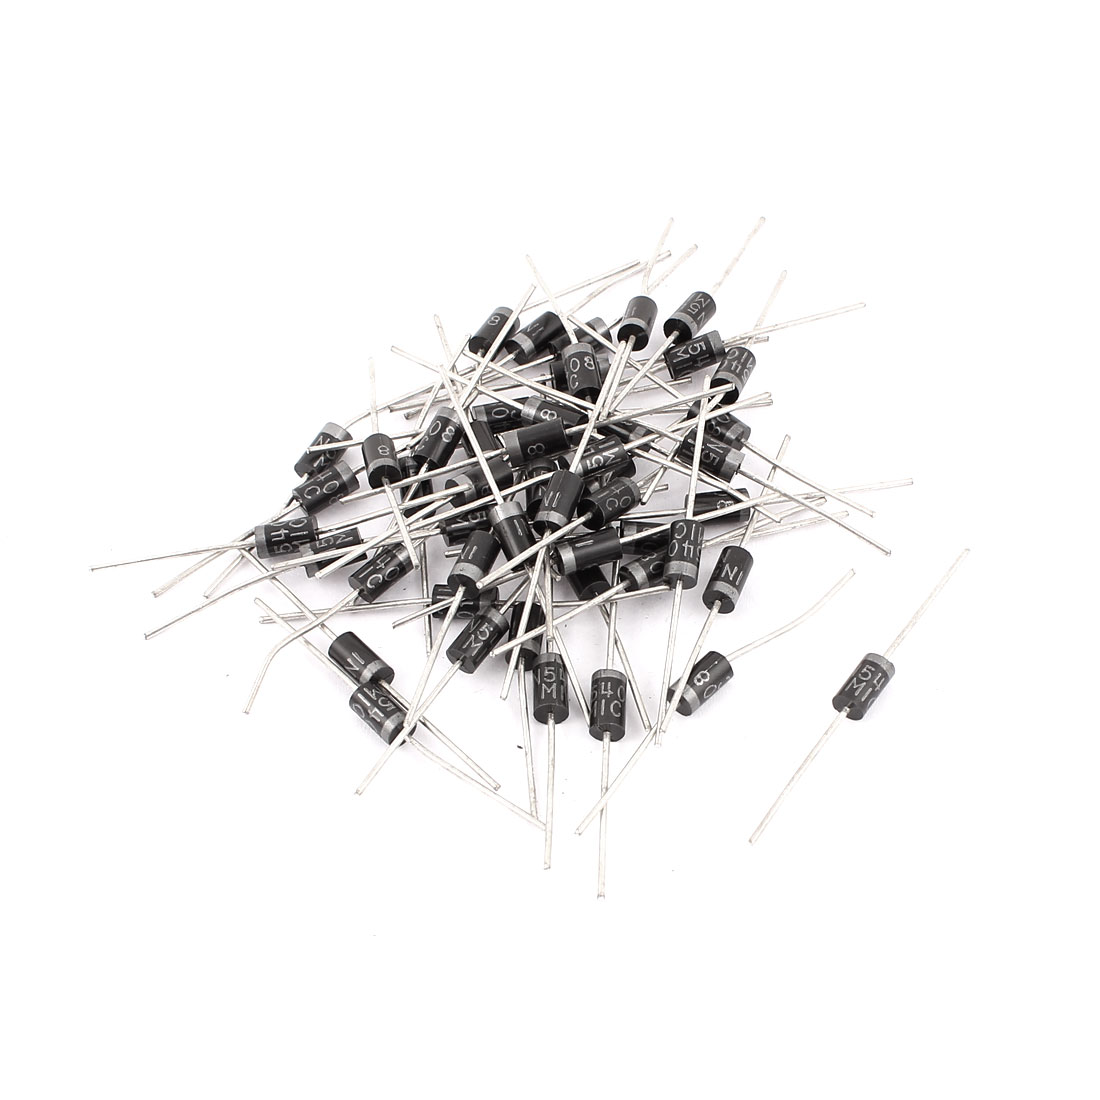 3A 1000V IN5408 Cylindrical Axial Leaded Rectifier Schottky Diodes 50 Pcs